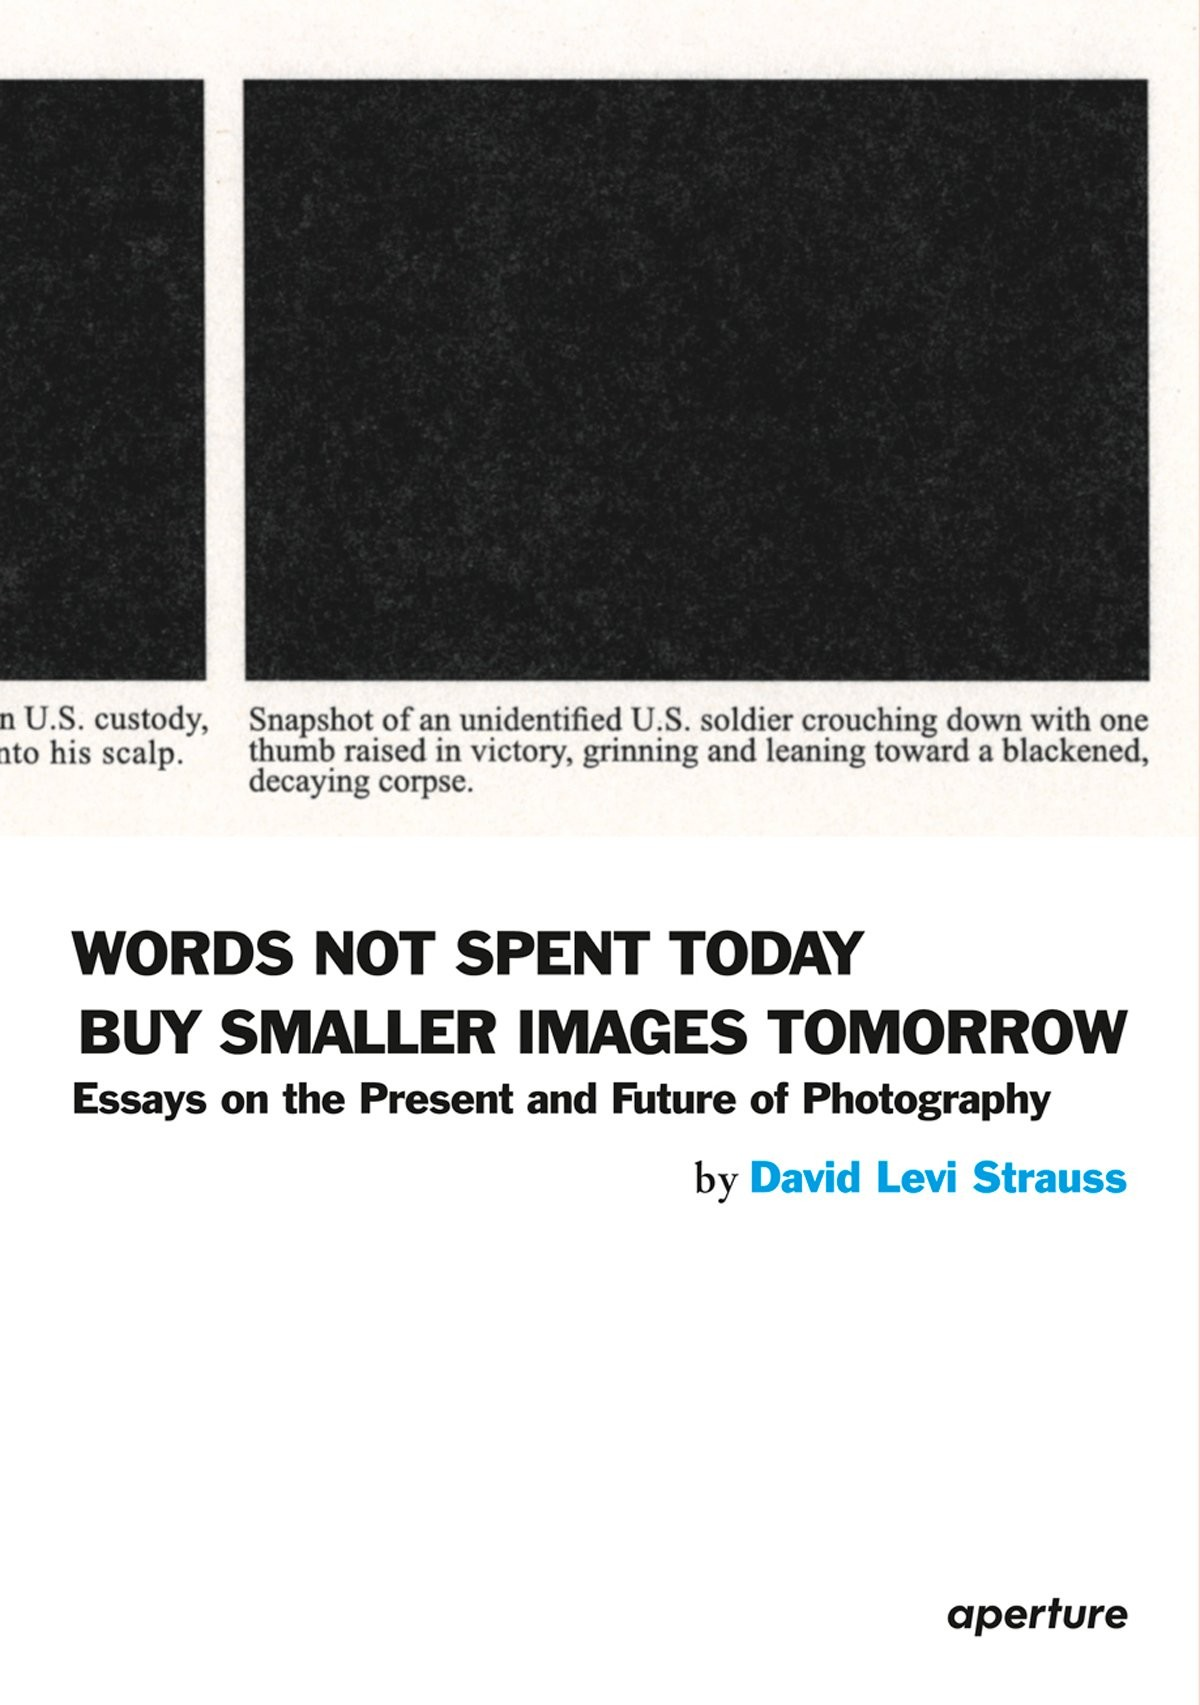 abu ghraib prison photography david levi strauss words not spent today